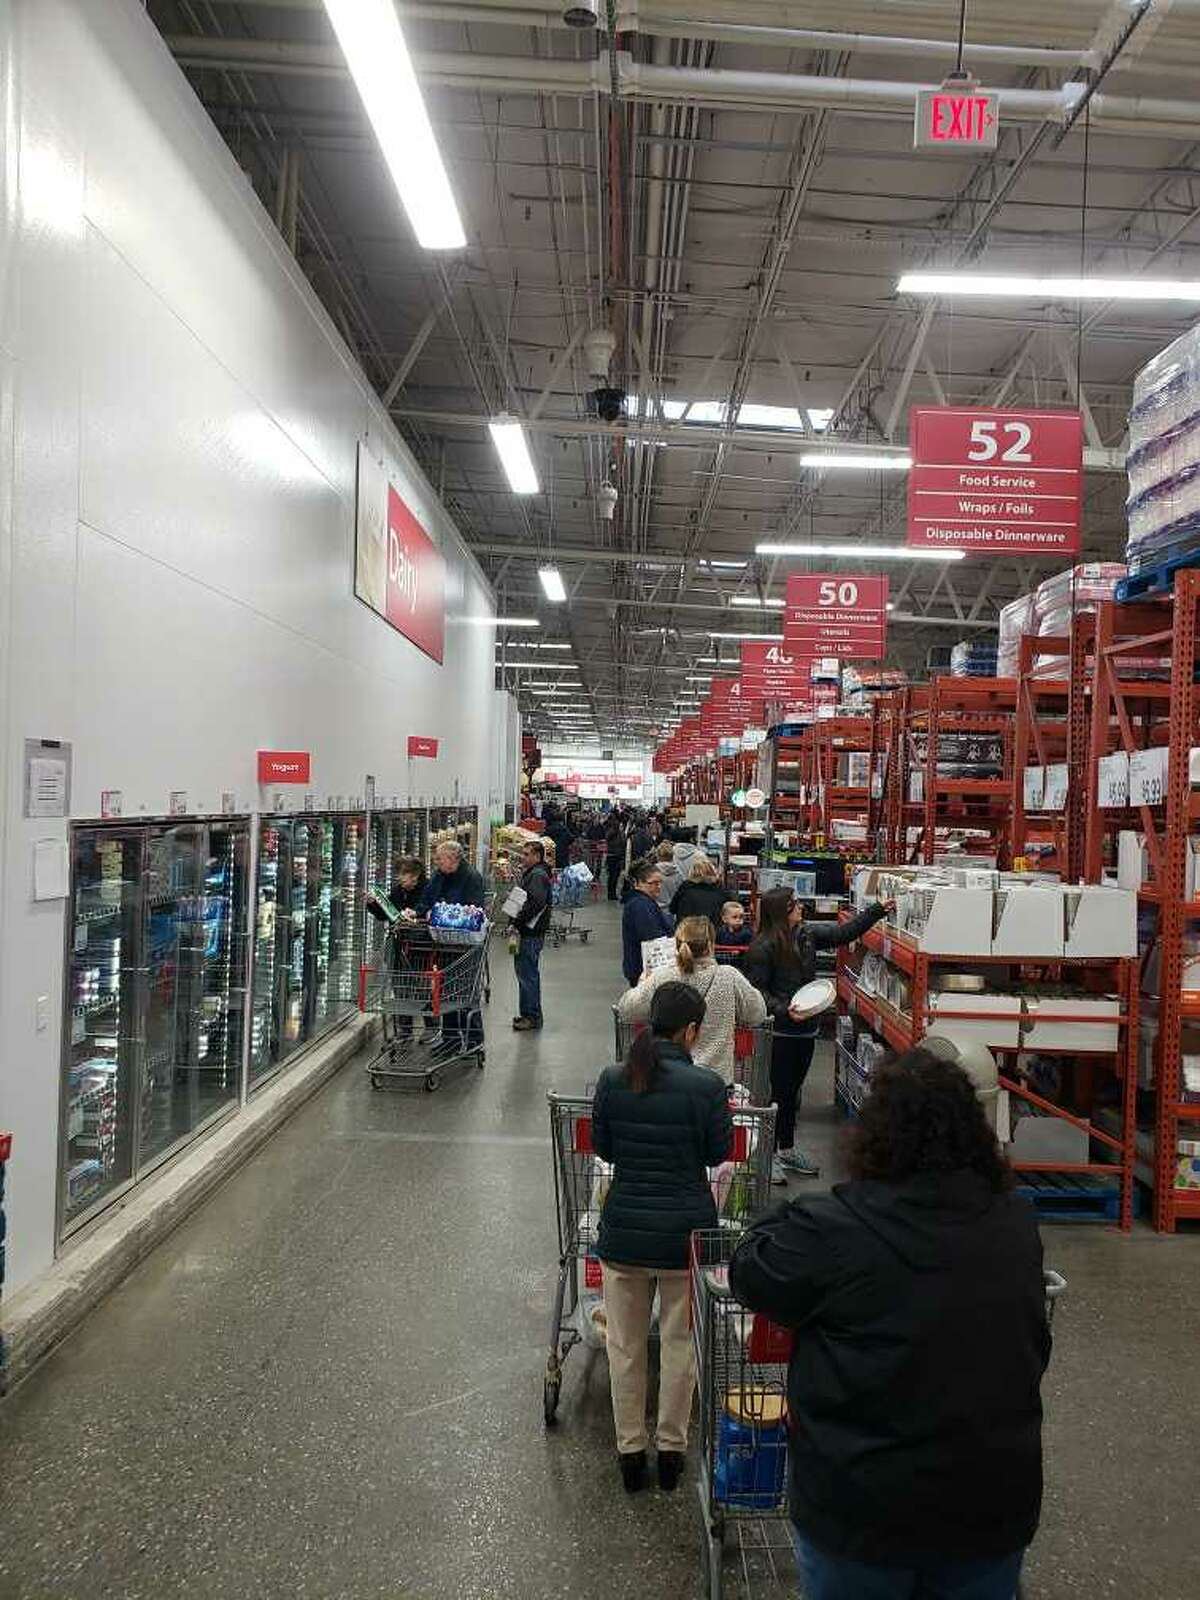 The checkout line at BJs extended to the produce section on Friday, March 13, 2020. None the less, the line moved fast. One shopper's cart was filled with two beef roasts, three dozen eggs and at five large bottles of liquor (from the BJs liquor store) .